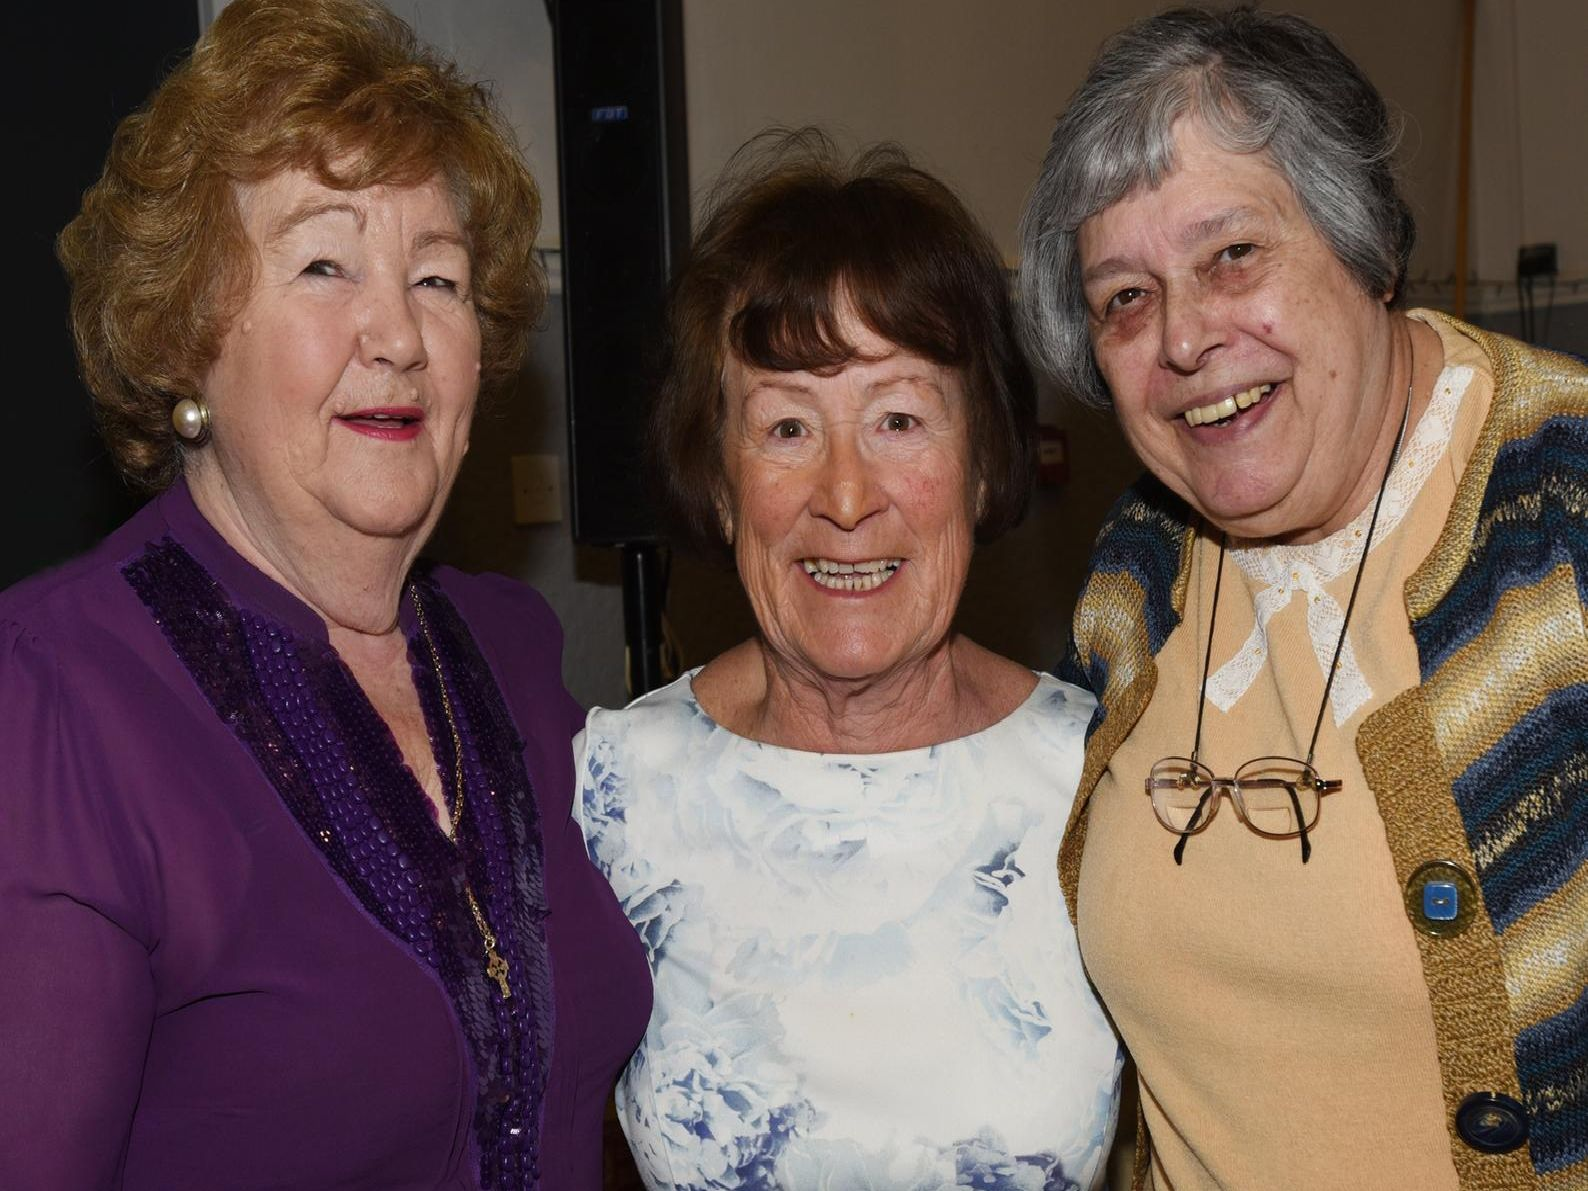 Betty Dearden, Margaret McLoughlin and Janet Newsham